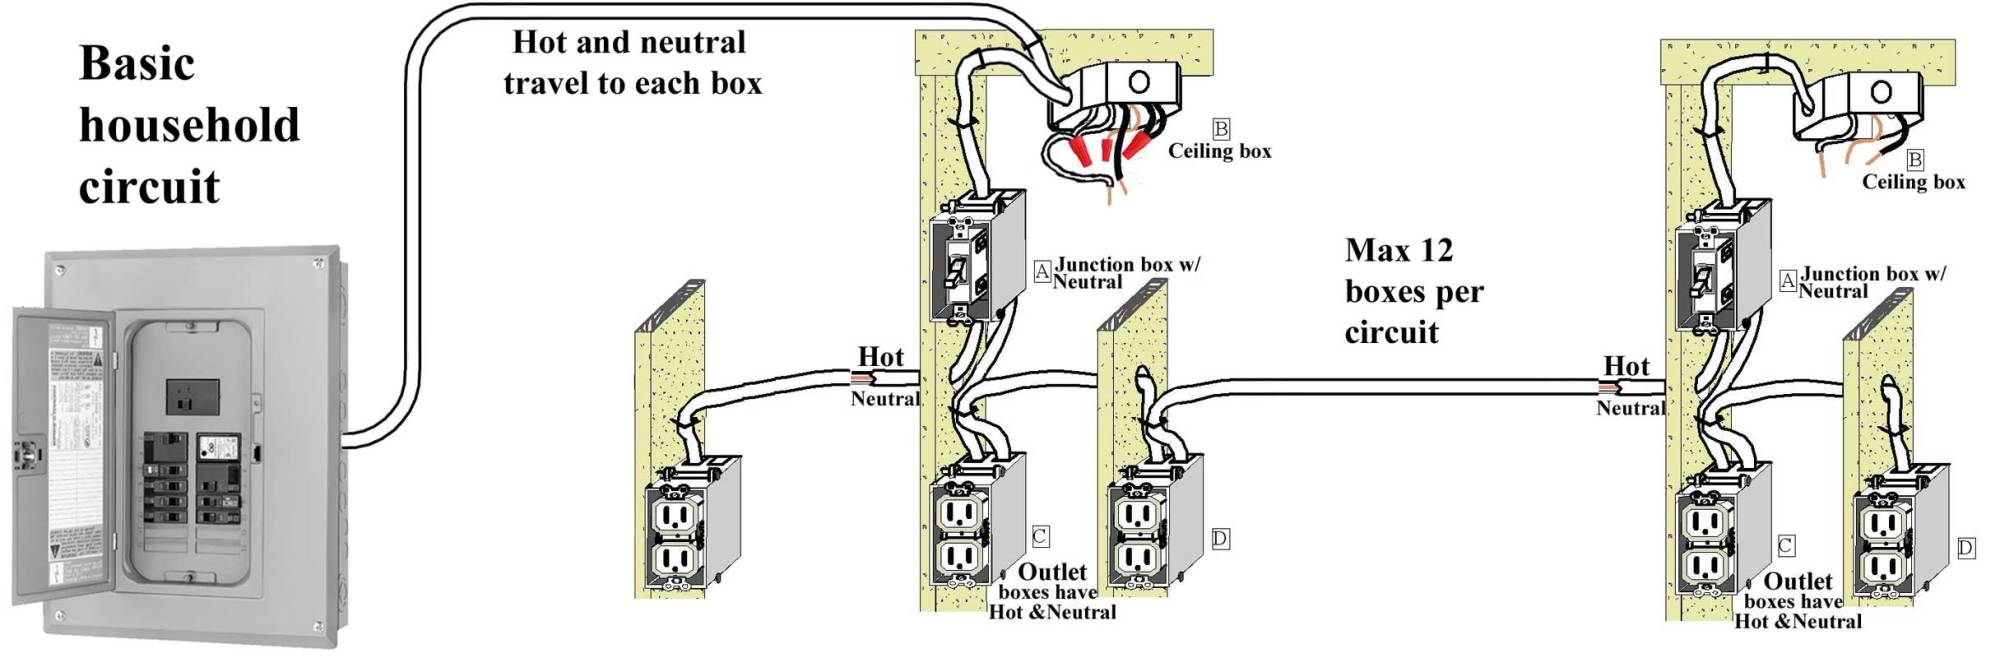 hight resolution of diy house wiring 101 wiring diagram source national electrical code basic house wiring 101 wiring diagram